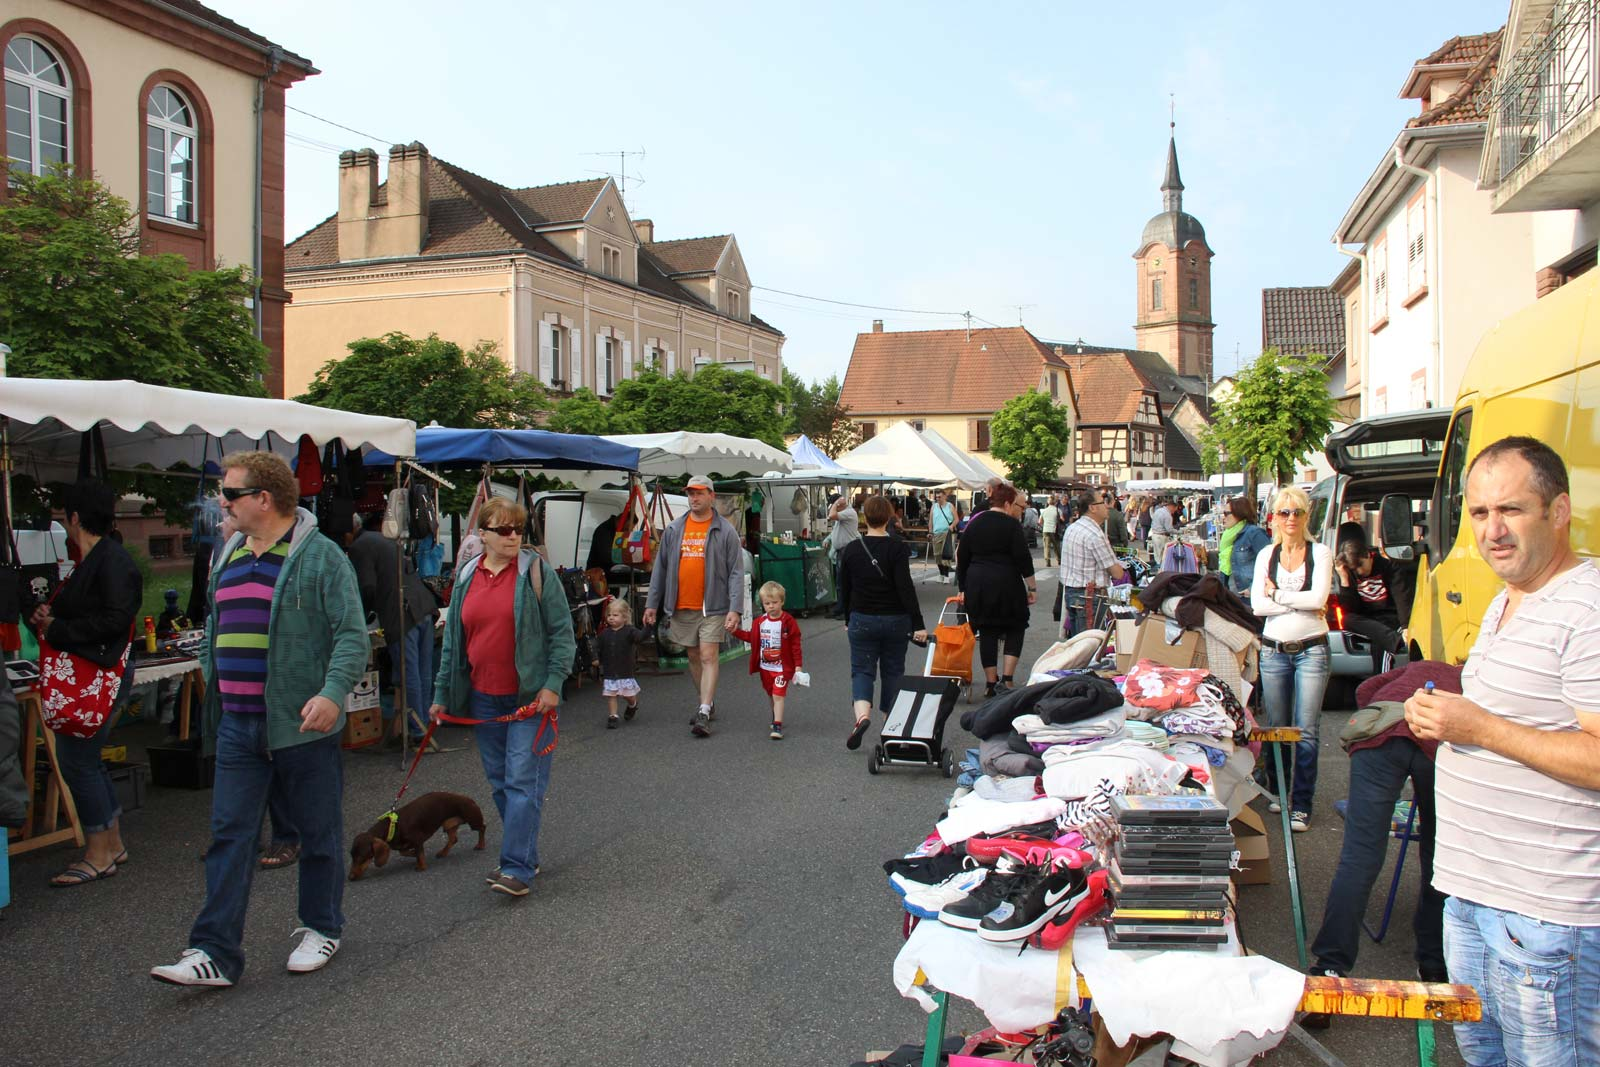 https://apps.tourisme-alsace.info/photos/niederbronn/photos/marche-puces-carnaval2015.JPG